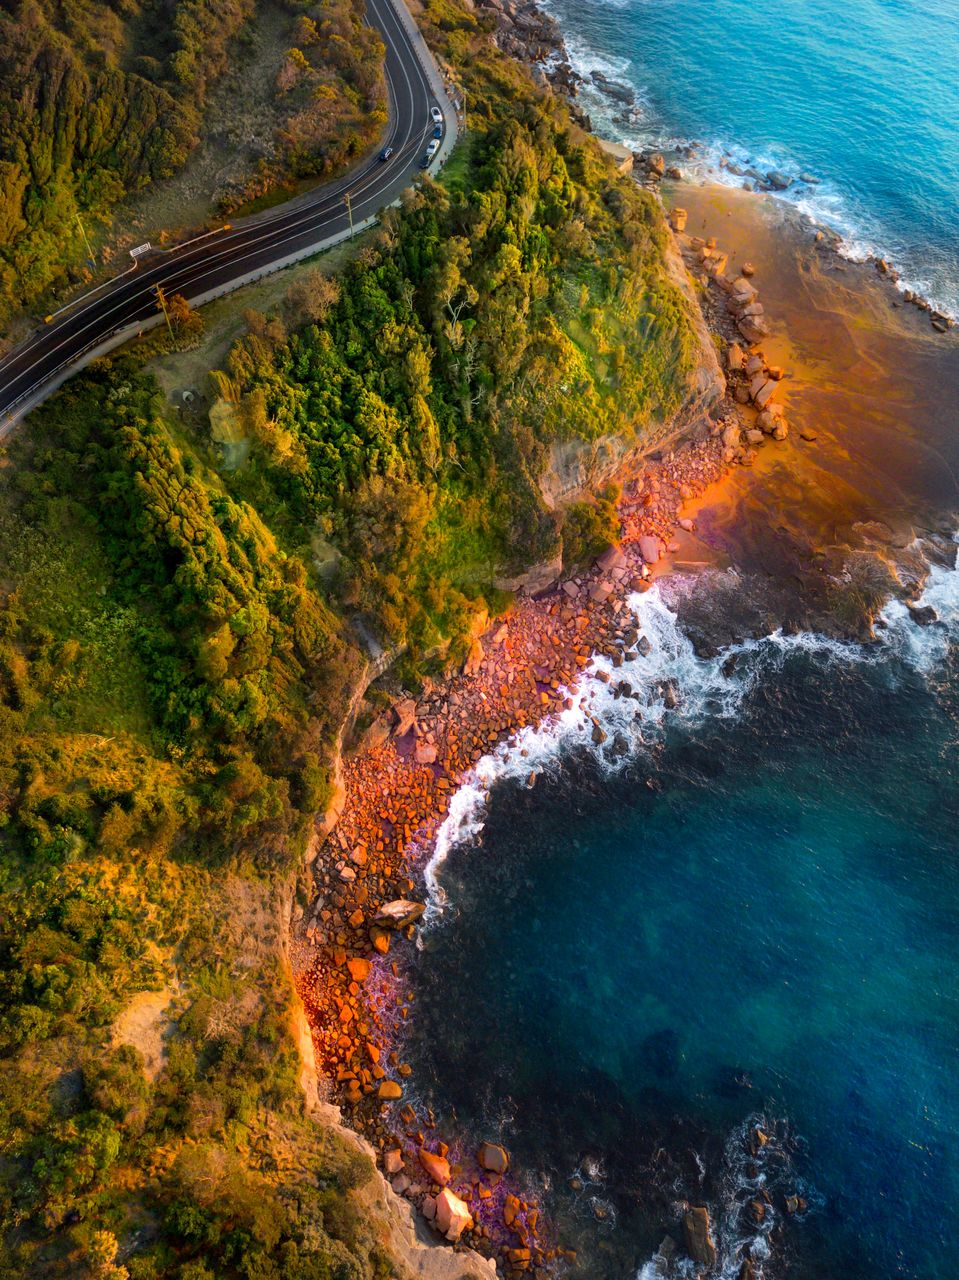 water, beauty in nature, scenics - nature, nature, sea, no people, high angle view, land, aerial view, tranquil scene, day, travel, outdoors, plant, environment, tranquility, tree, transportation, non-urban scene, power in nature